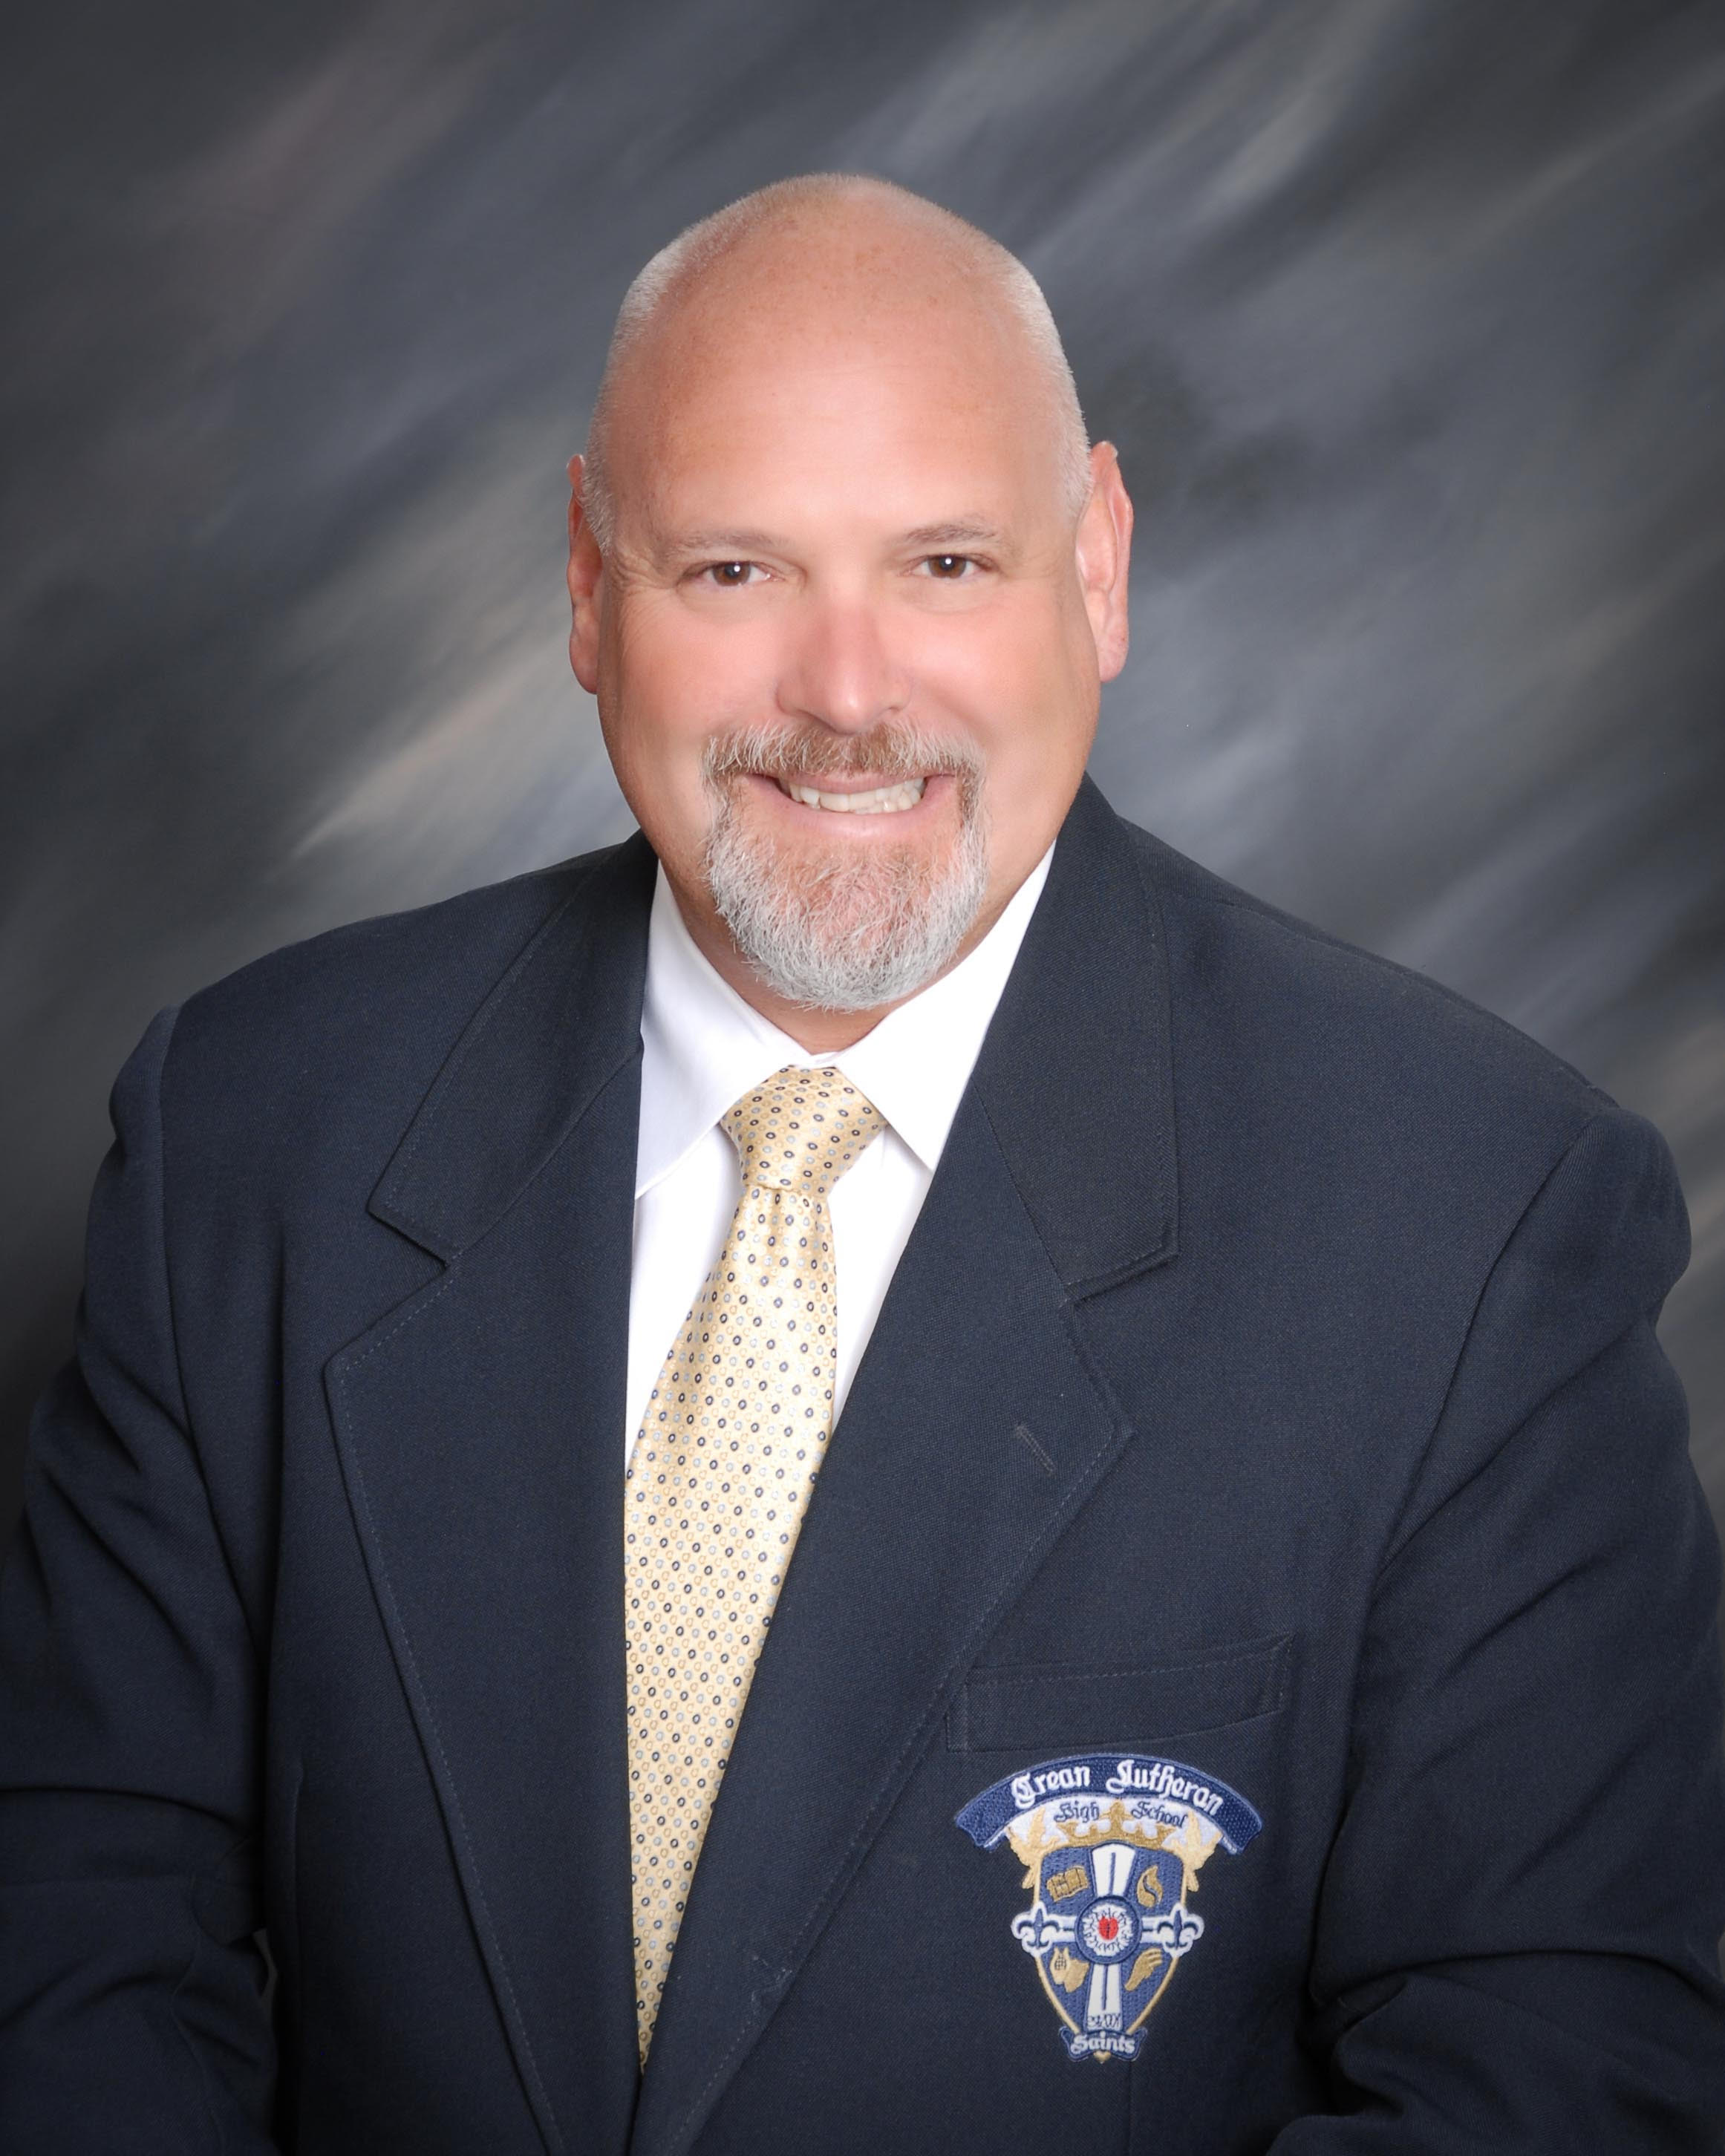 Jeffrey Beavers is the Executive Director and CEO of Crean Lutheran High School in Irvine, CA. He can be reached at beavers@clshs.org. -